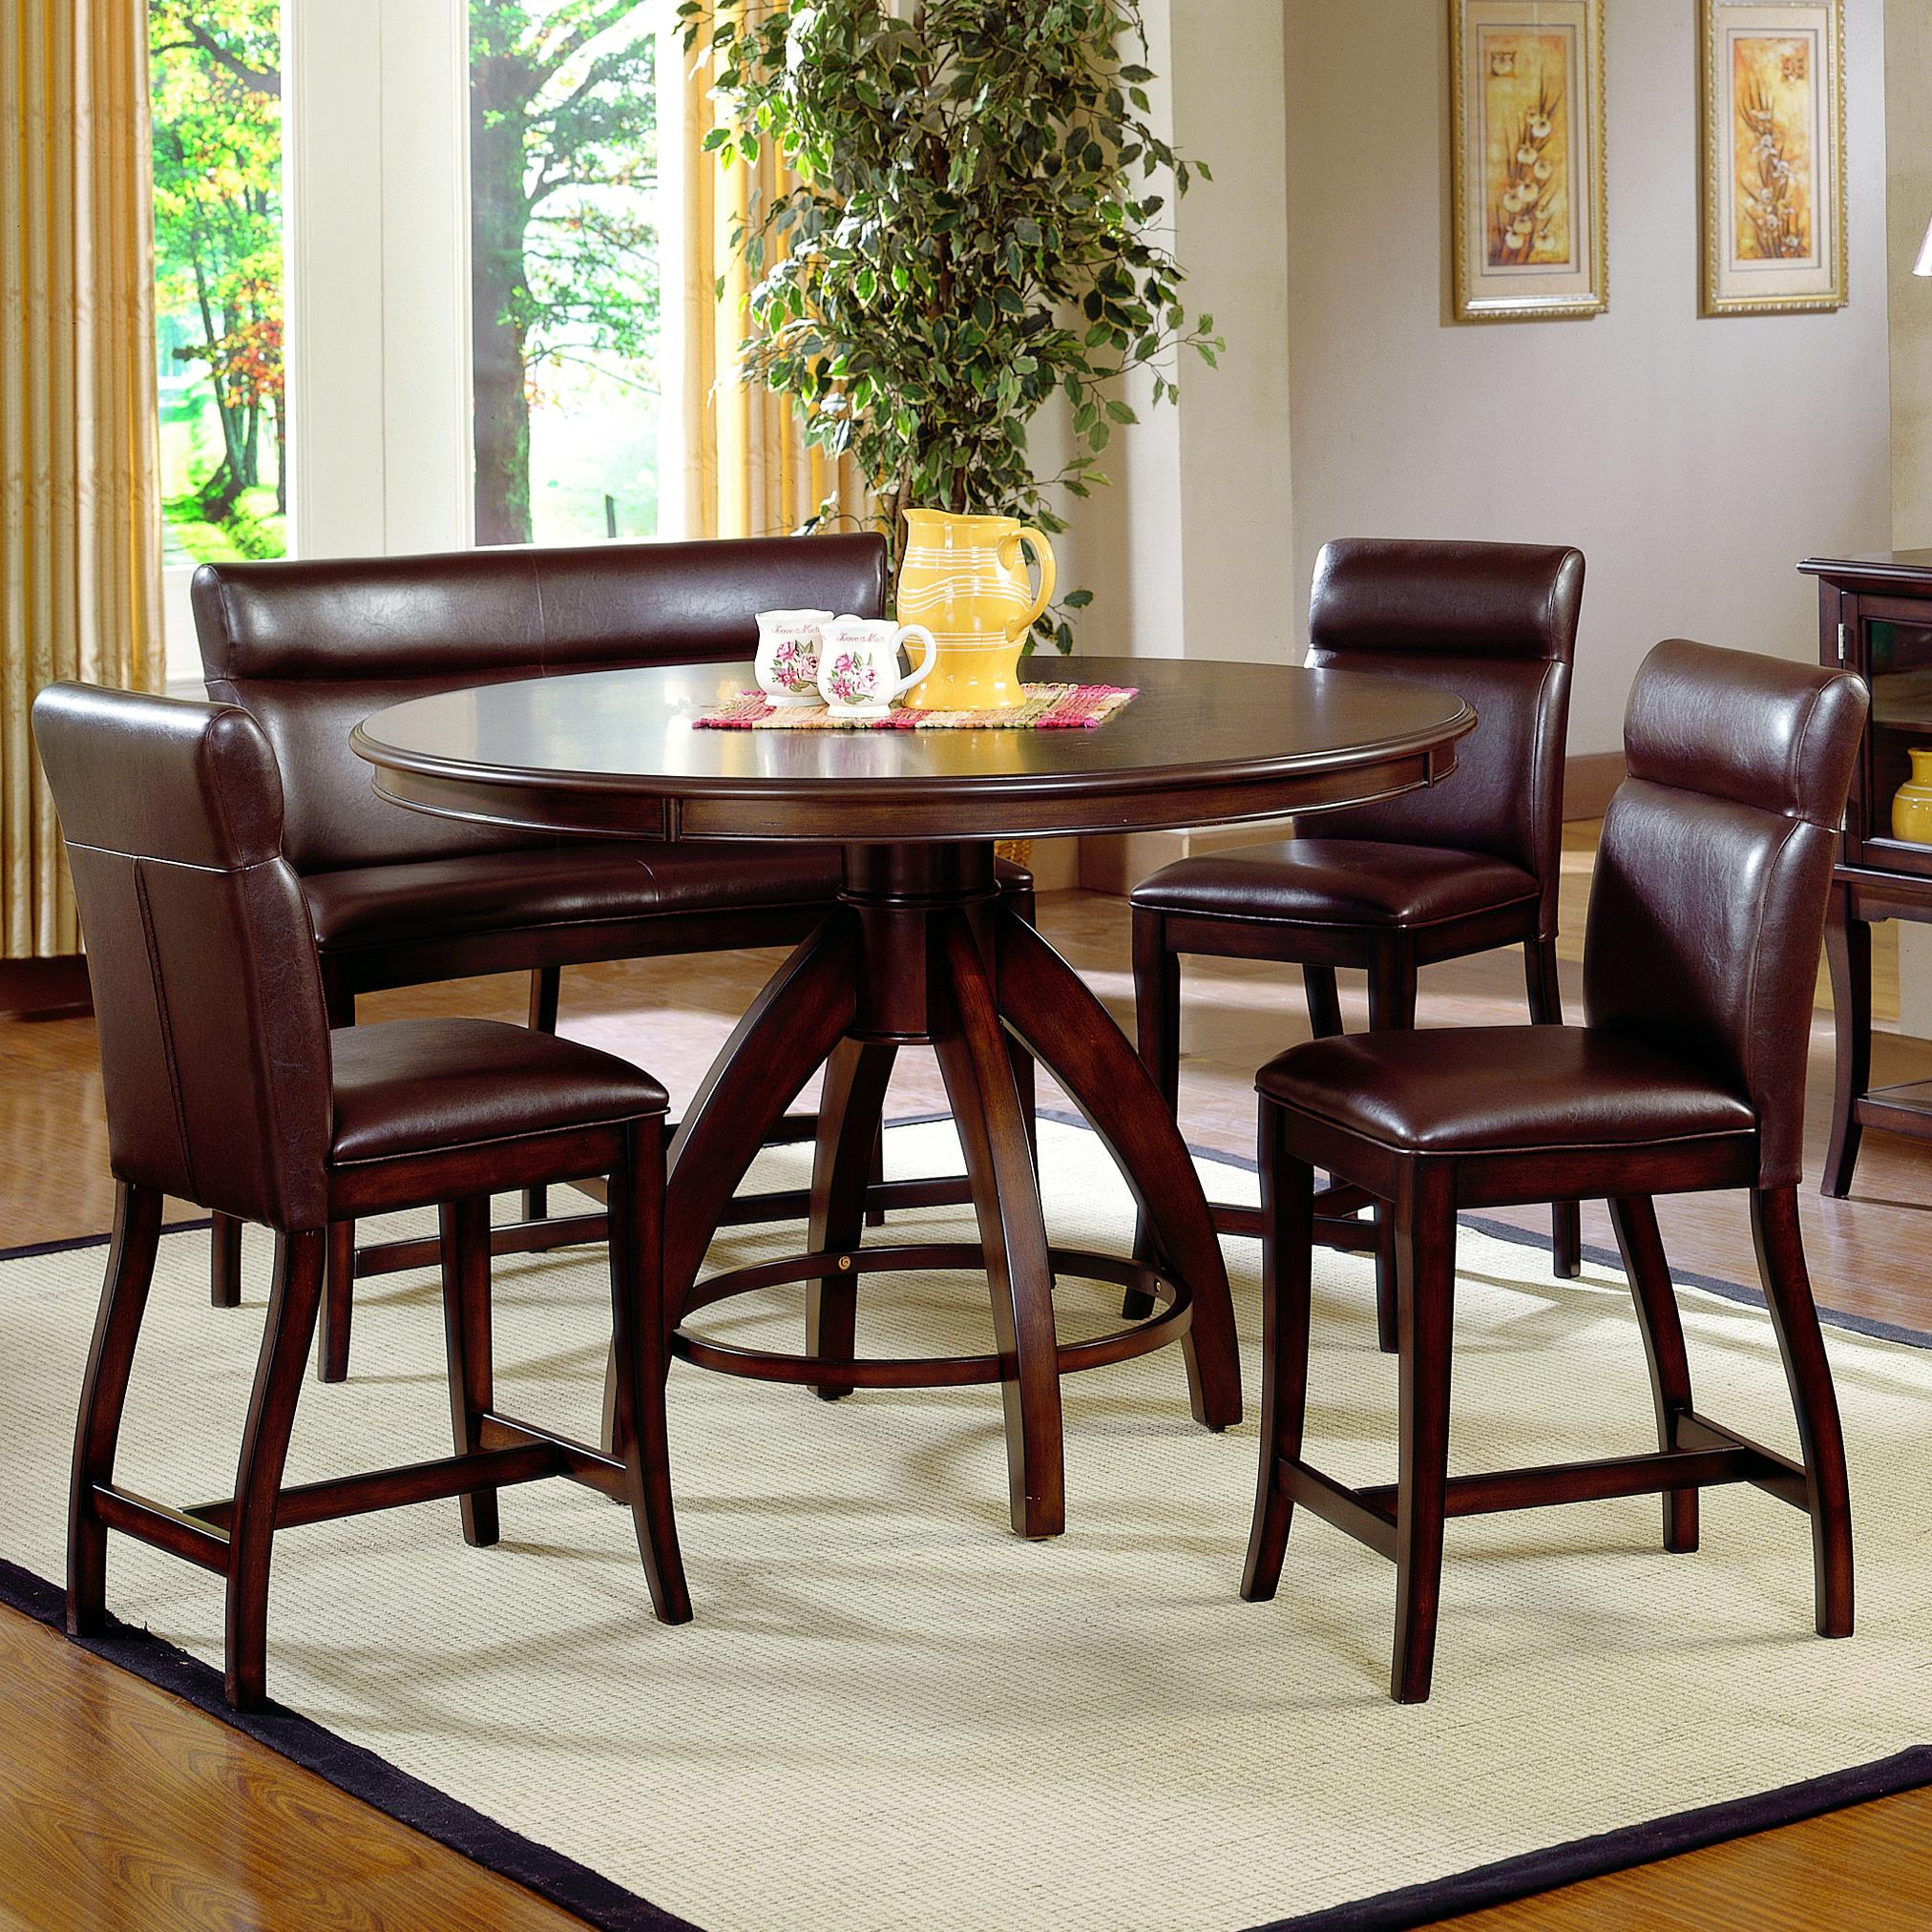 Hillsdale Nottingham 5 Piece Counter Height Dining Set - Item Number: 4077DTBCG